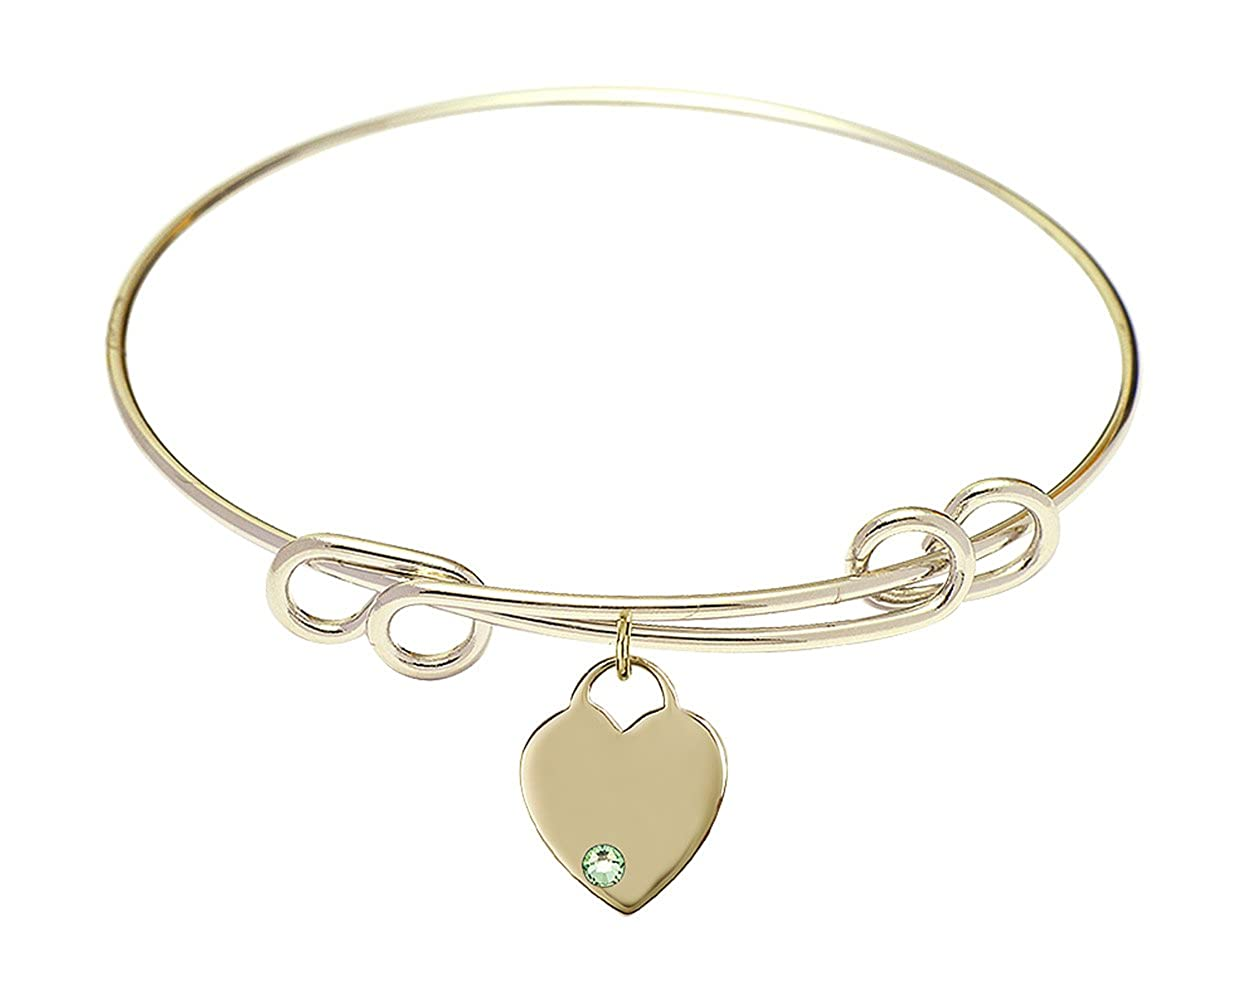 Heart Charm On A 8 1//2 Inch Round Double Loop Bangle Bracelet